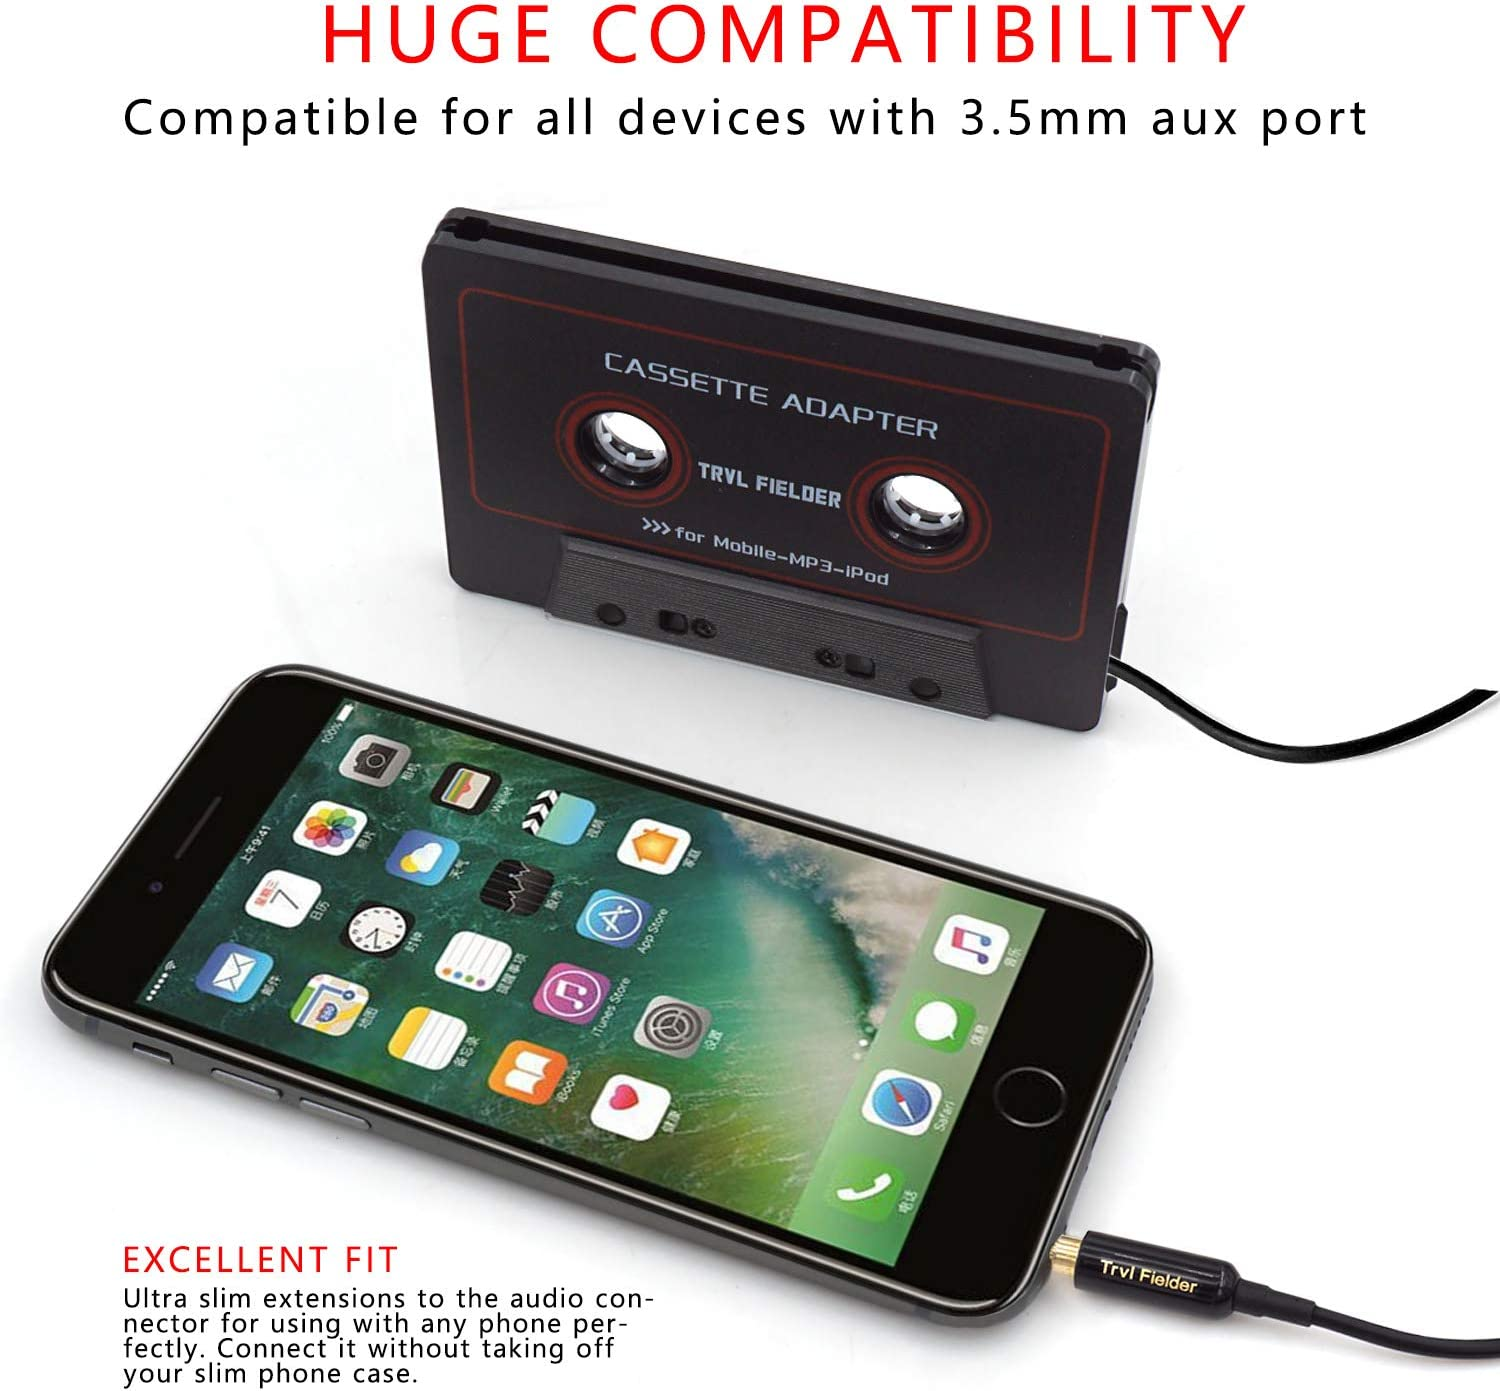 Vintage//Retro Music Converter Smartphones Reshow Cassette Adapter for Cars White MP3 Players or a Walkman in a Standard Vehicle Cassette Player Listen to iPods